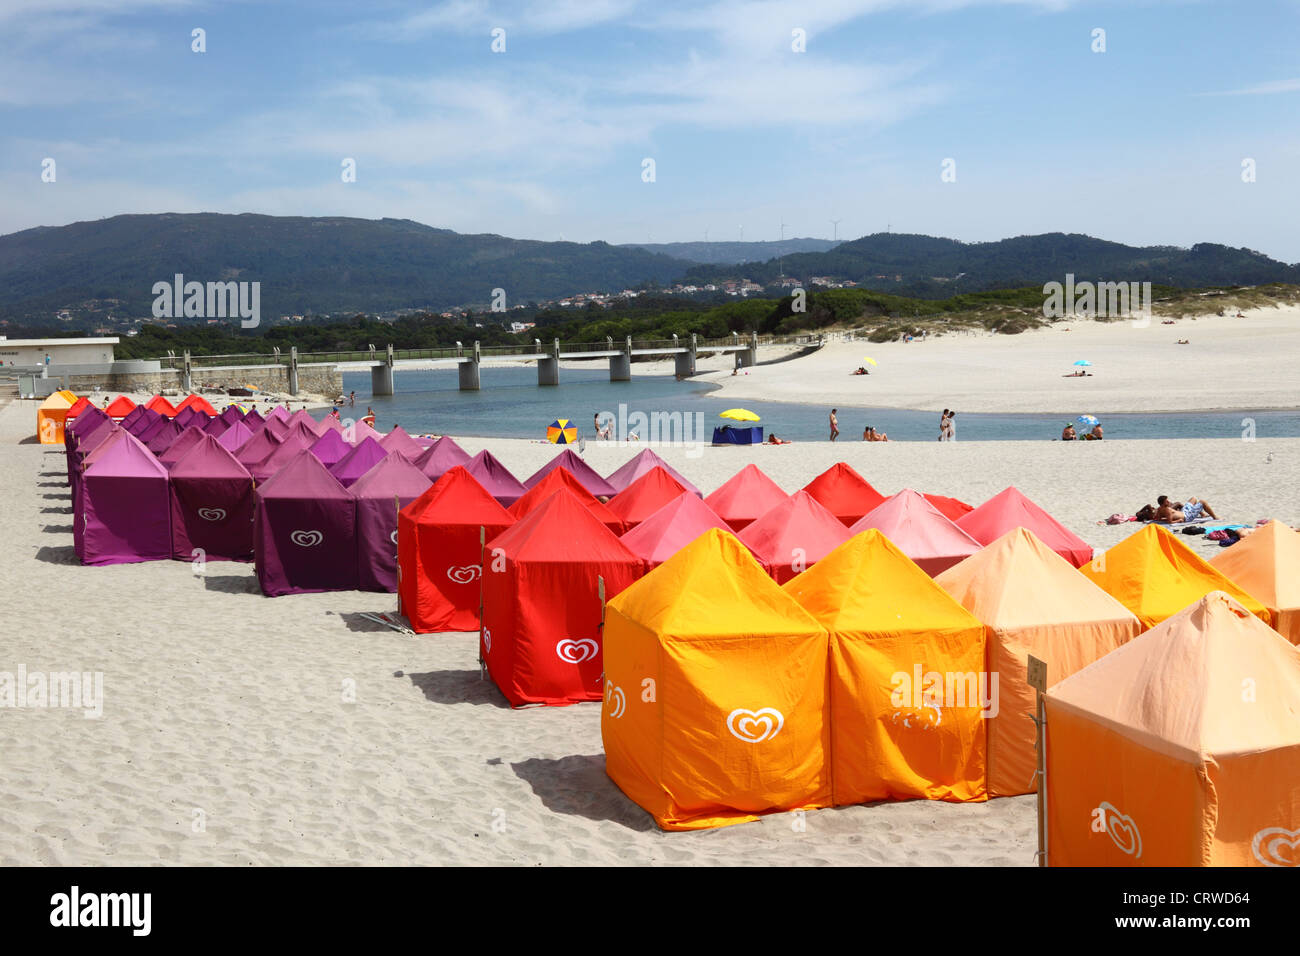 Colourful tents for changing on the beach , Vila Praia de Ancora , near Caminha, Minho Province, northern Portugal Stock Photo